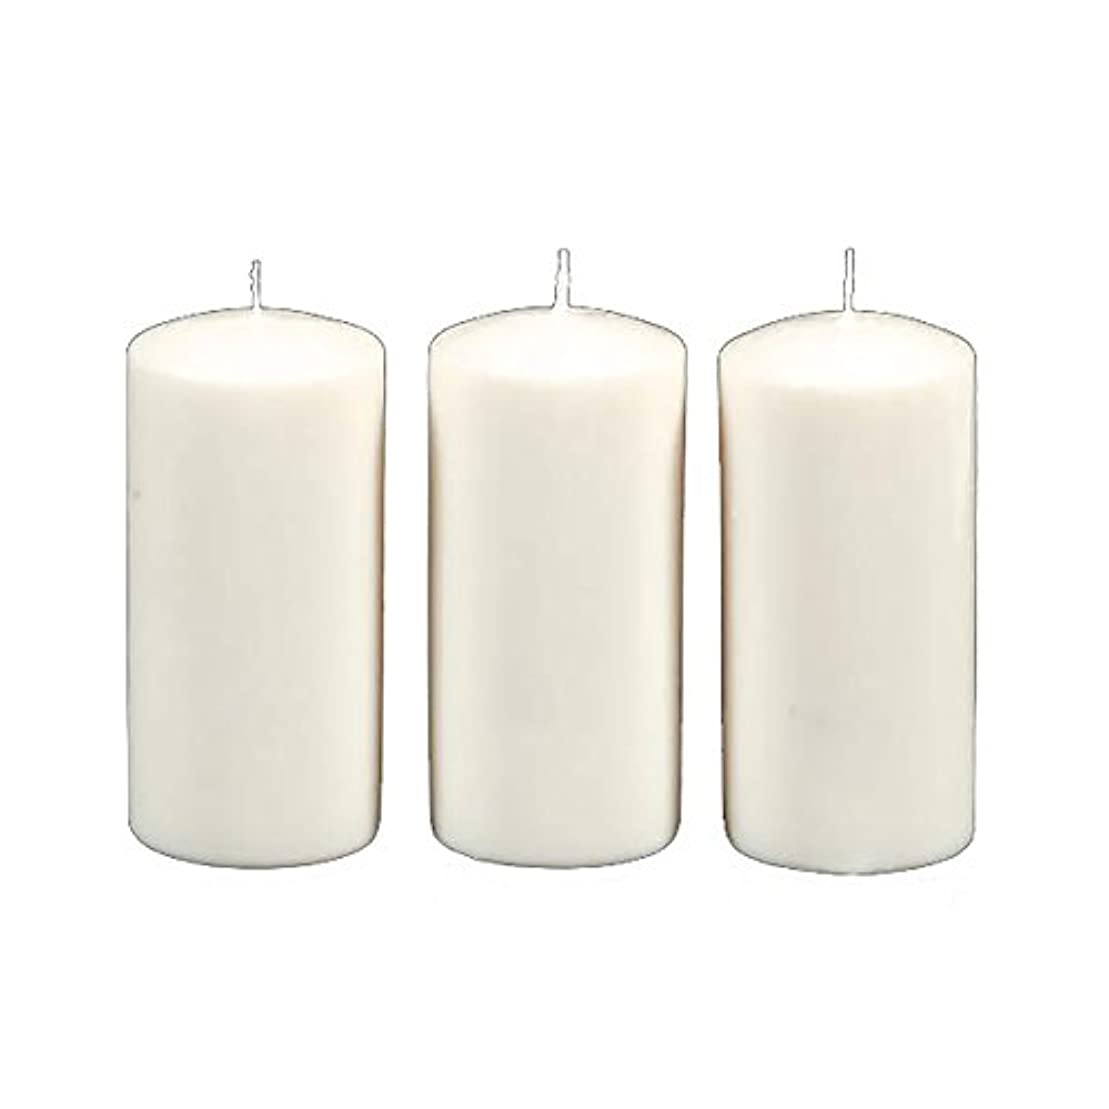 ショートカットブレークアベニューDarice 3-Piece Unscented Pillar Candles, 3 Inch by 6-Inch, White by Darice